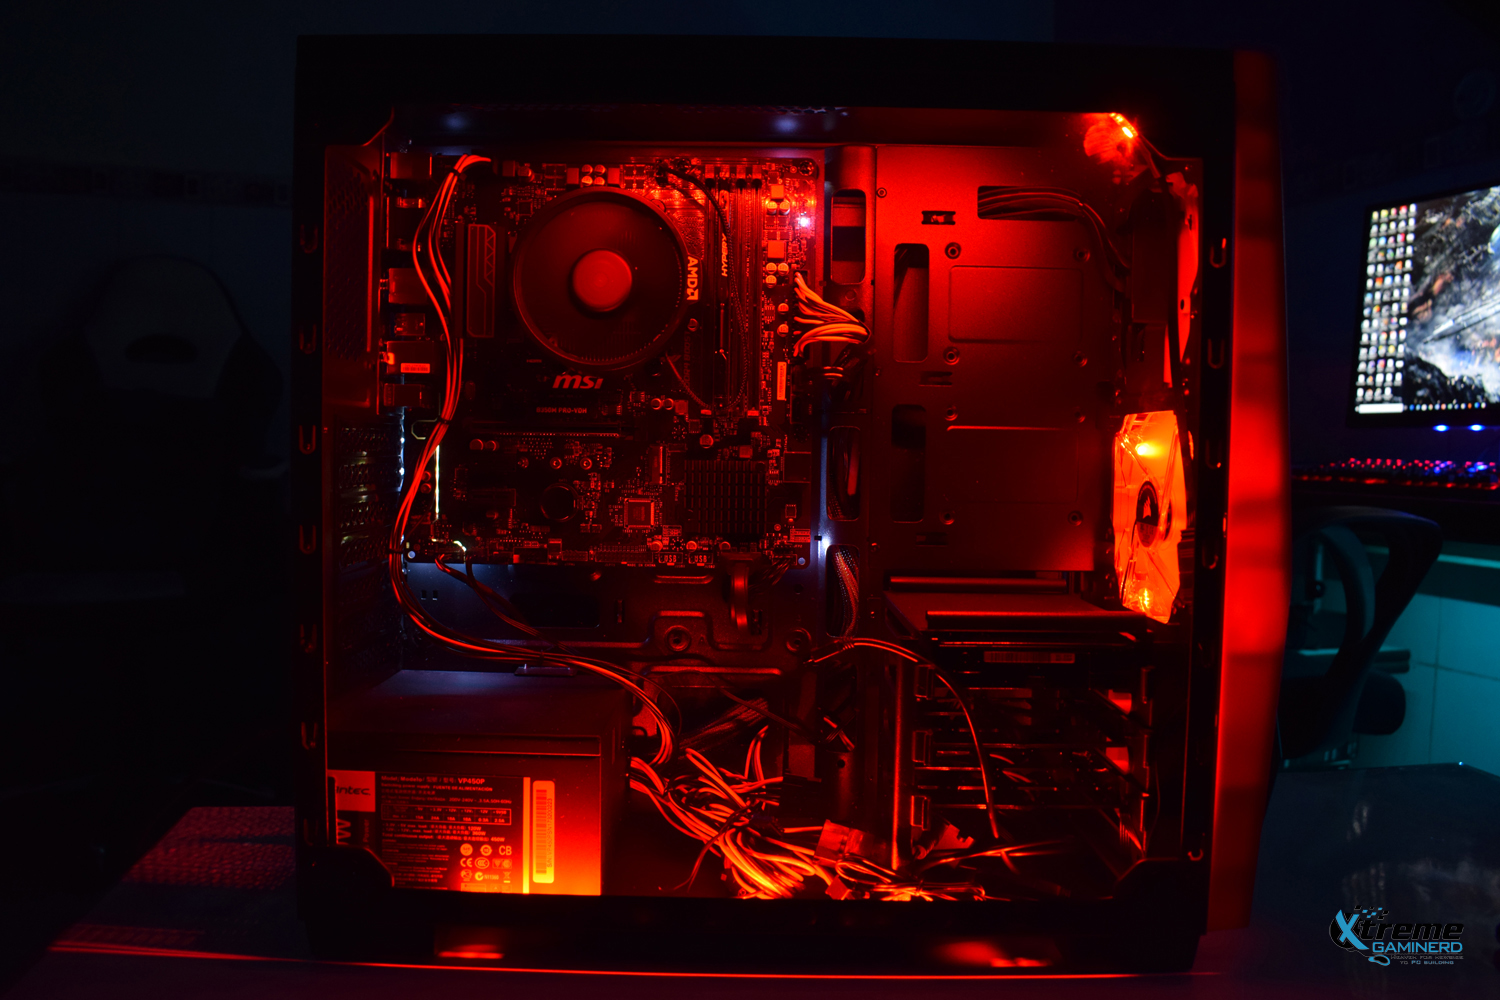 Ryzen 5 2400G Gaming PC 1